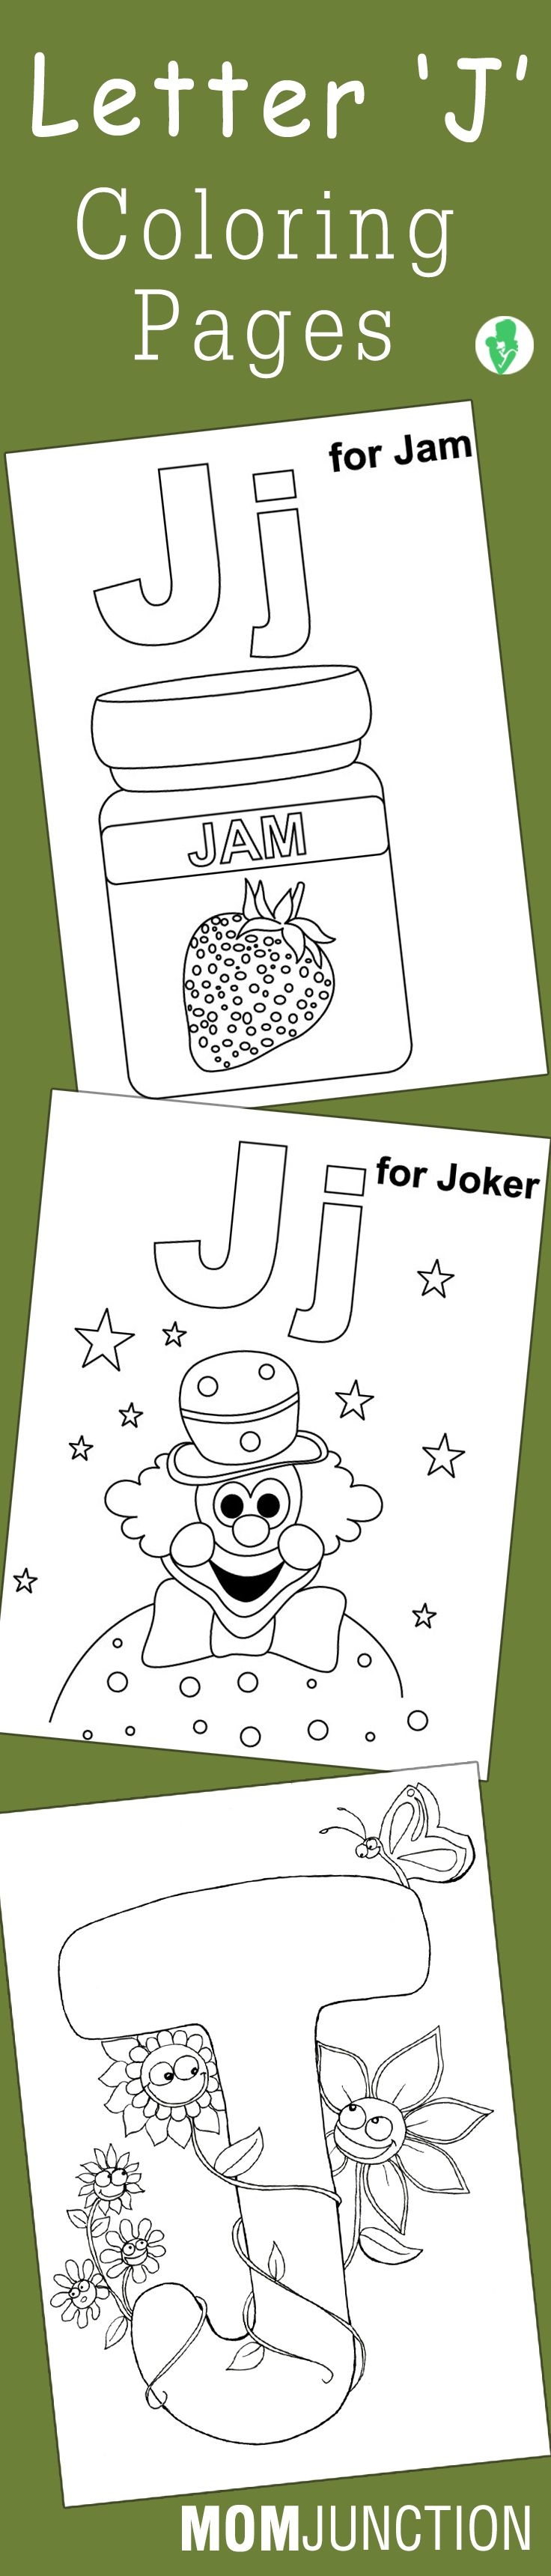 top 10 free printable letter j coloring pages online learning